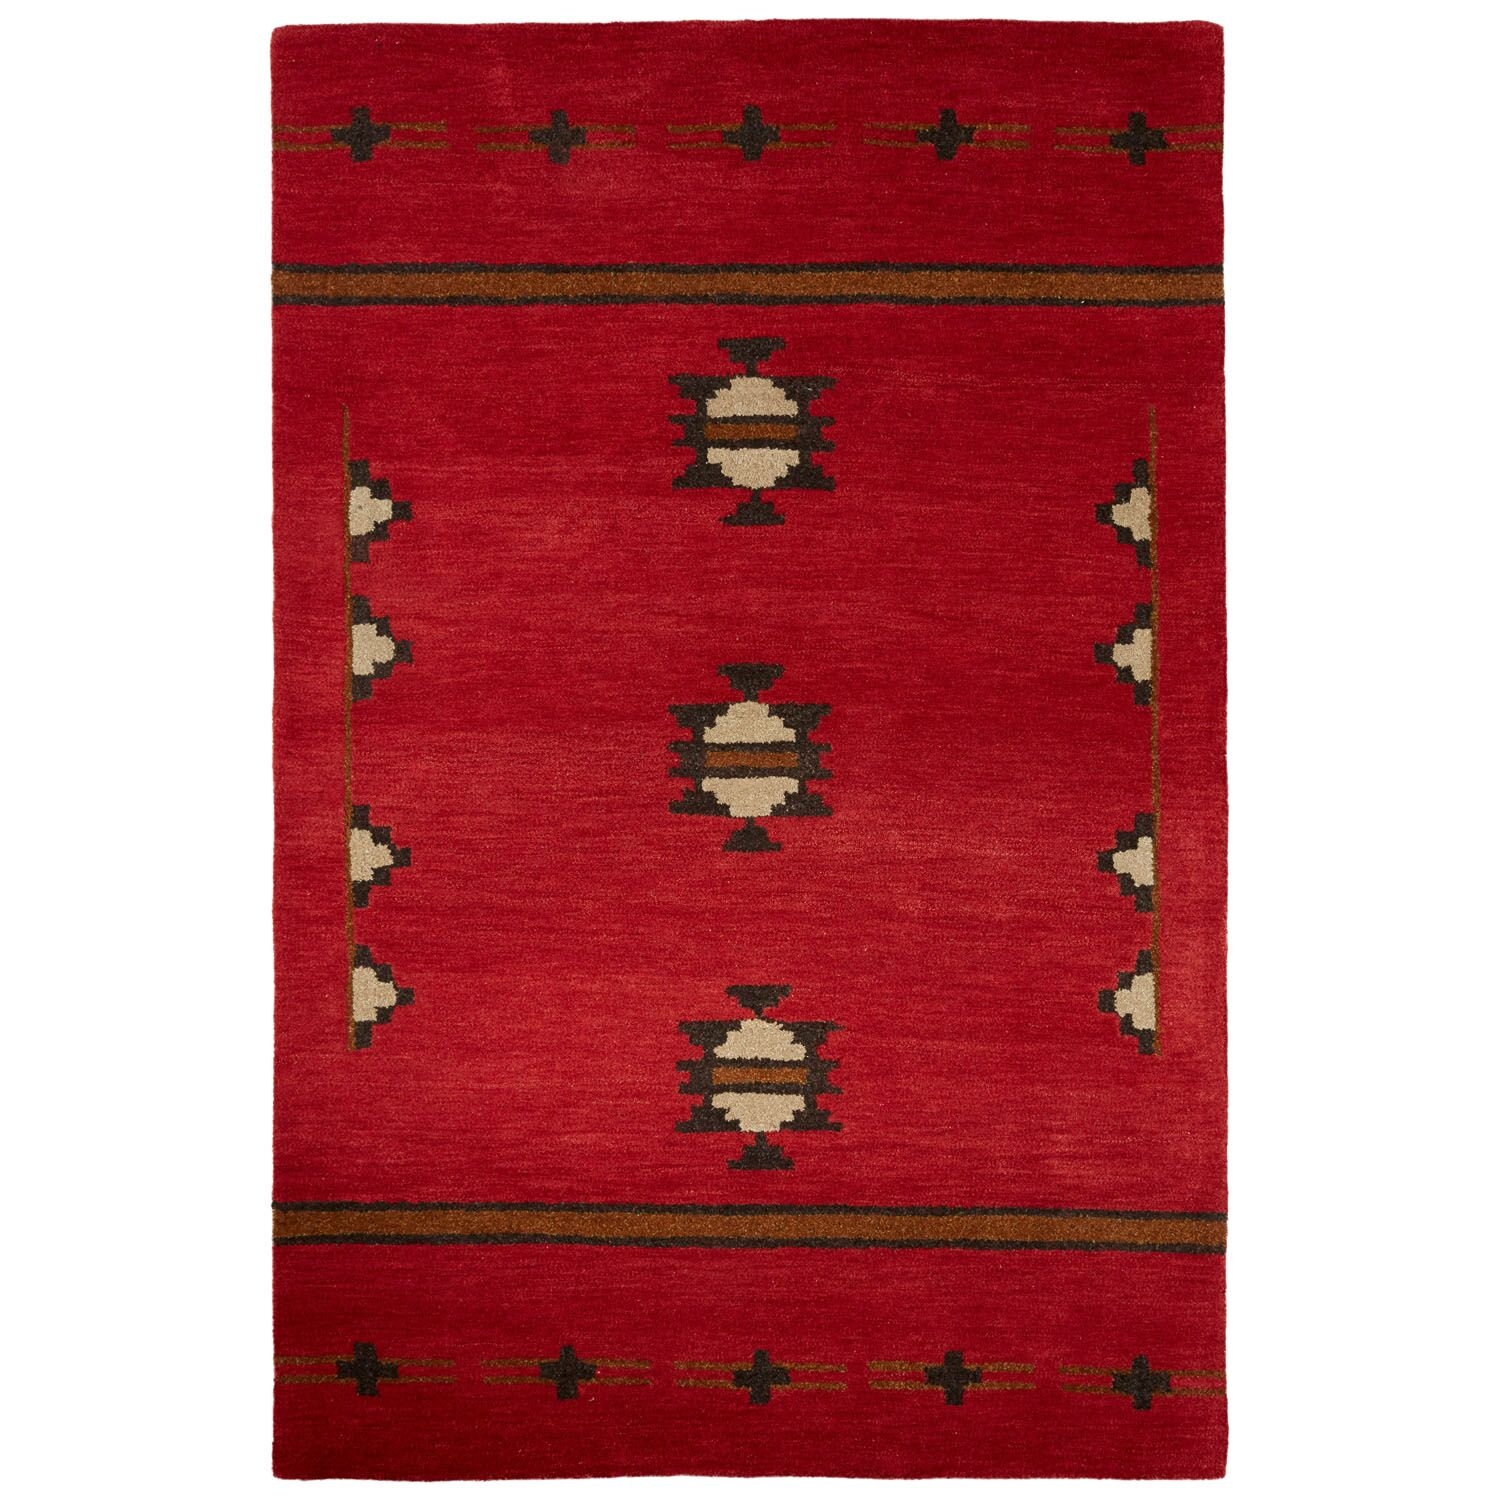 Zachary Hand-Woven Wool Red Area Rug Rug Size: Rectangle 8' x 10'